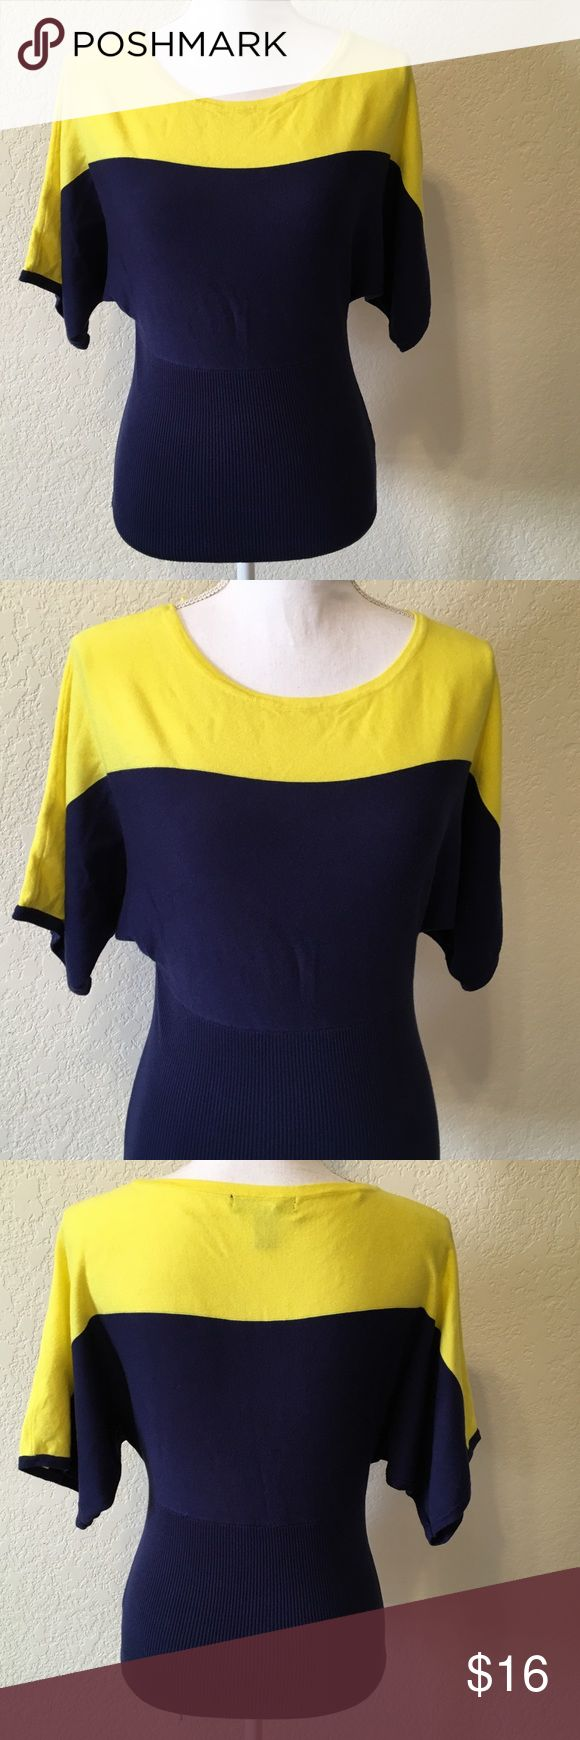 """NWOT Style & Co Yellow & Navy Top Sz M NWOT.  Style & Co Blue and Yellow Batwing Sleeve Sweater Top.  Size Med Petite.  Length from top of shoulder to hem: 23"""".  Sleeve length: 10"""".  Sleeve cuff width: 8"""".   80% rayon, 20% nylon.  Machine wash cold.    Love it but not the price - I'm open to (reasonable) offers or consider bundling 2 or more items for an additional 15% off and combined shipping!    Check out my reviews - I only sell great quality items! Style & Co Tops Blouses"""